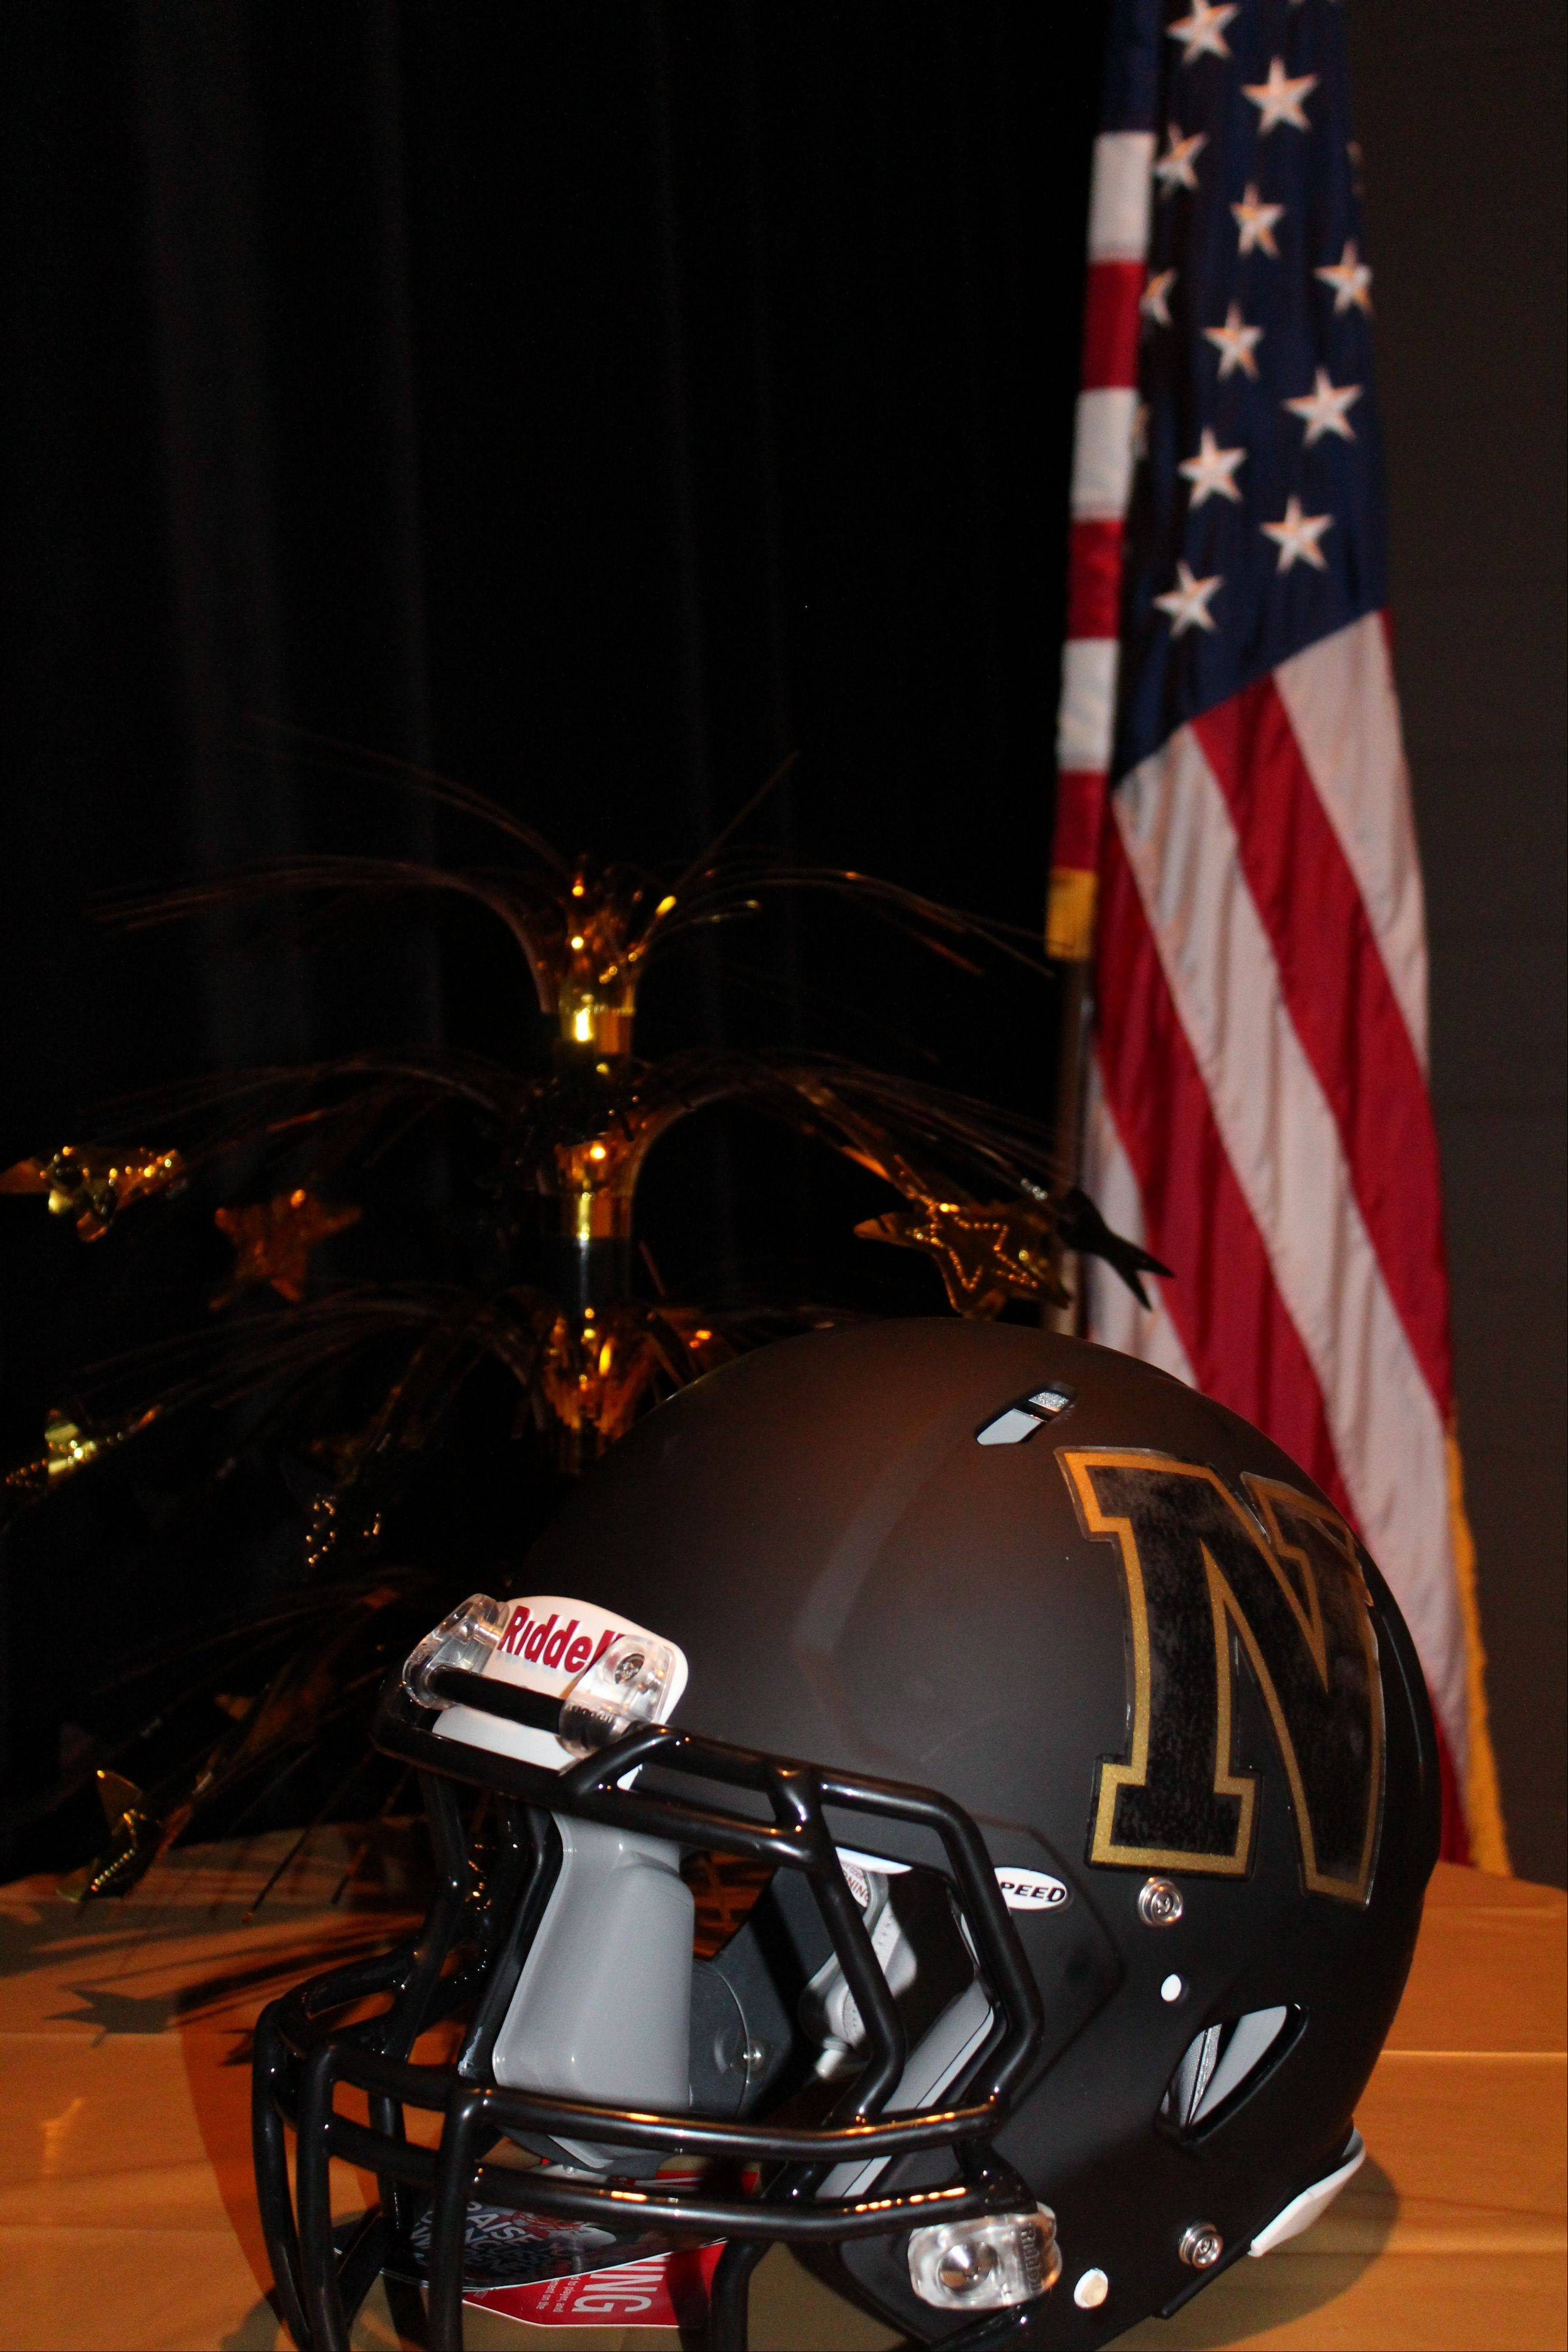 The Jr. Knights will have an identity, and a strong association with Grayslake North High School.